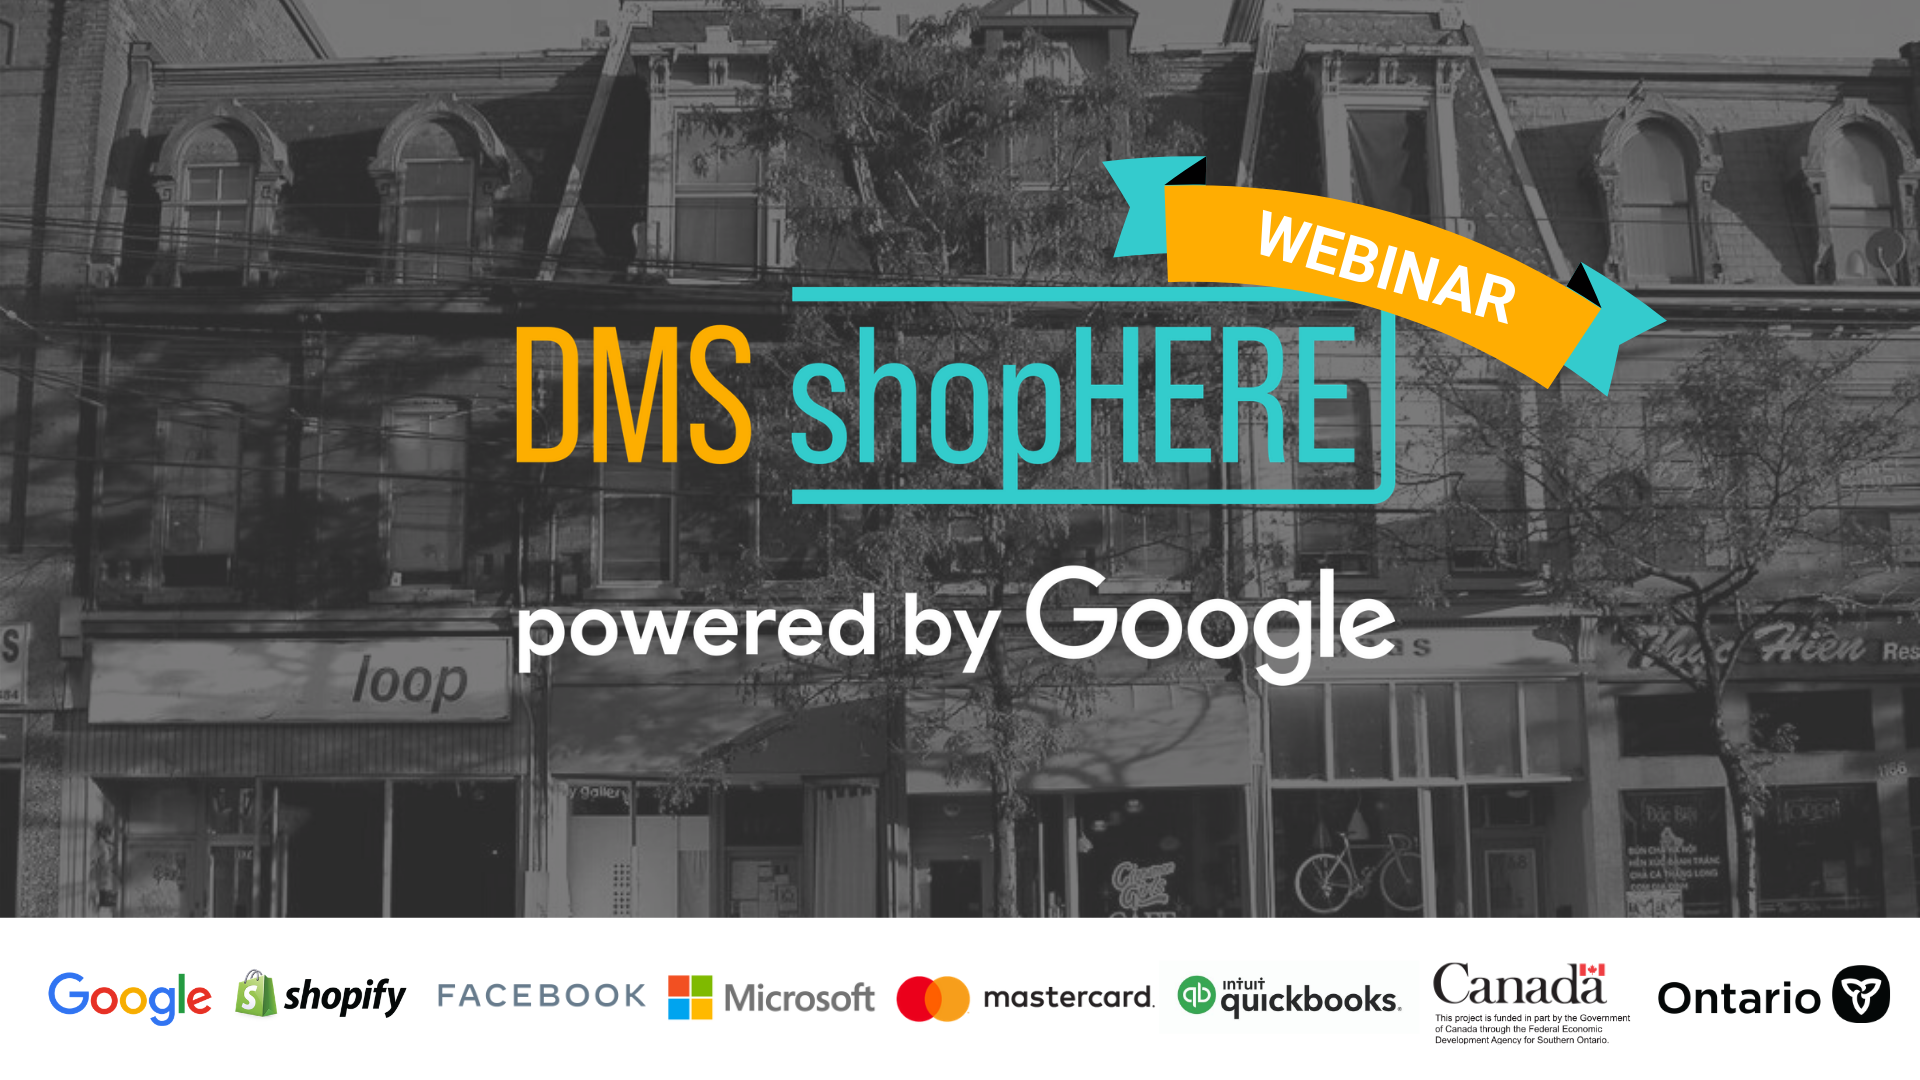 ShopHERE Powered By Google Webinar